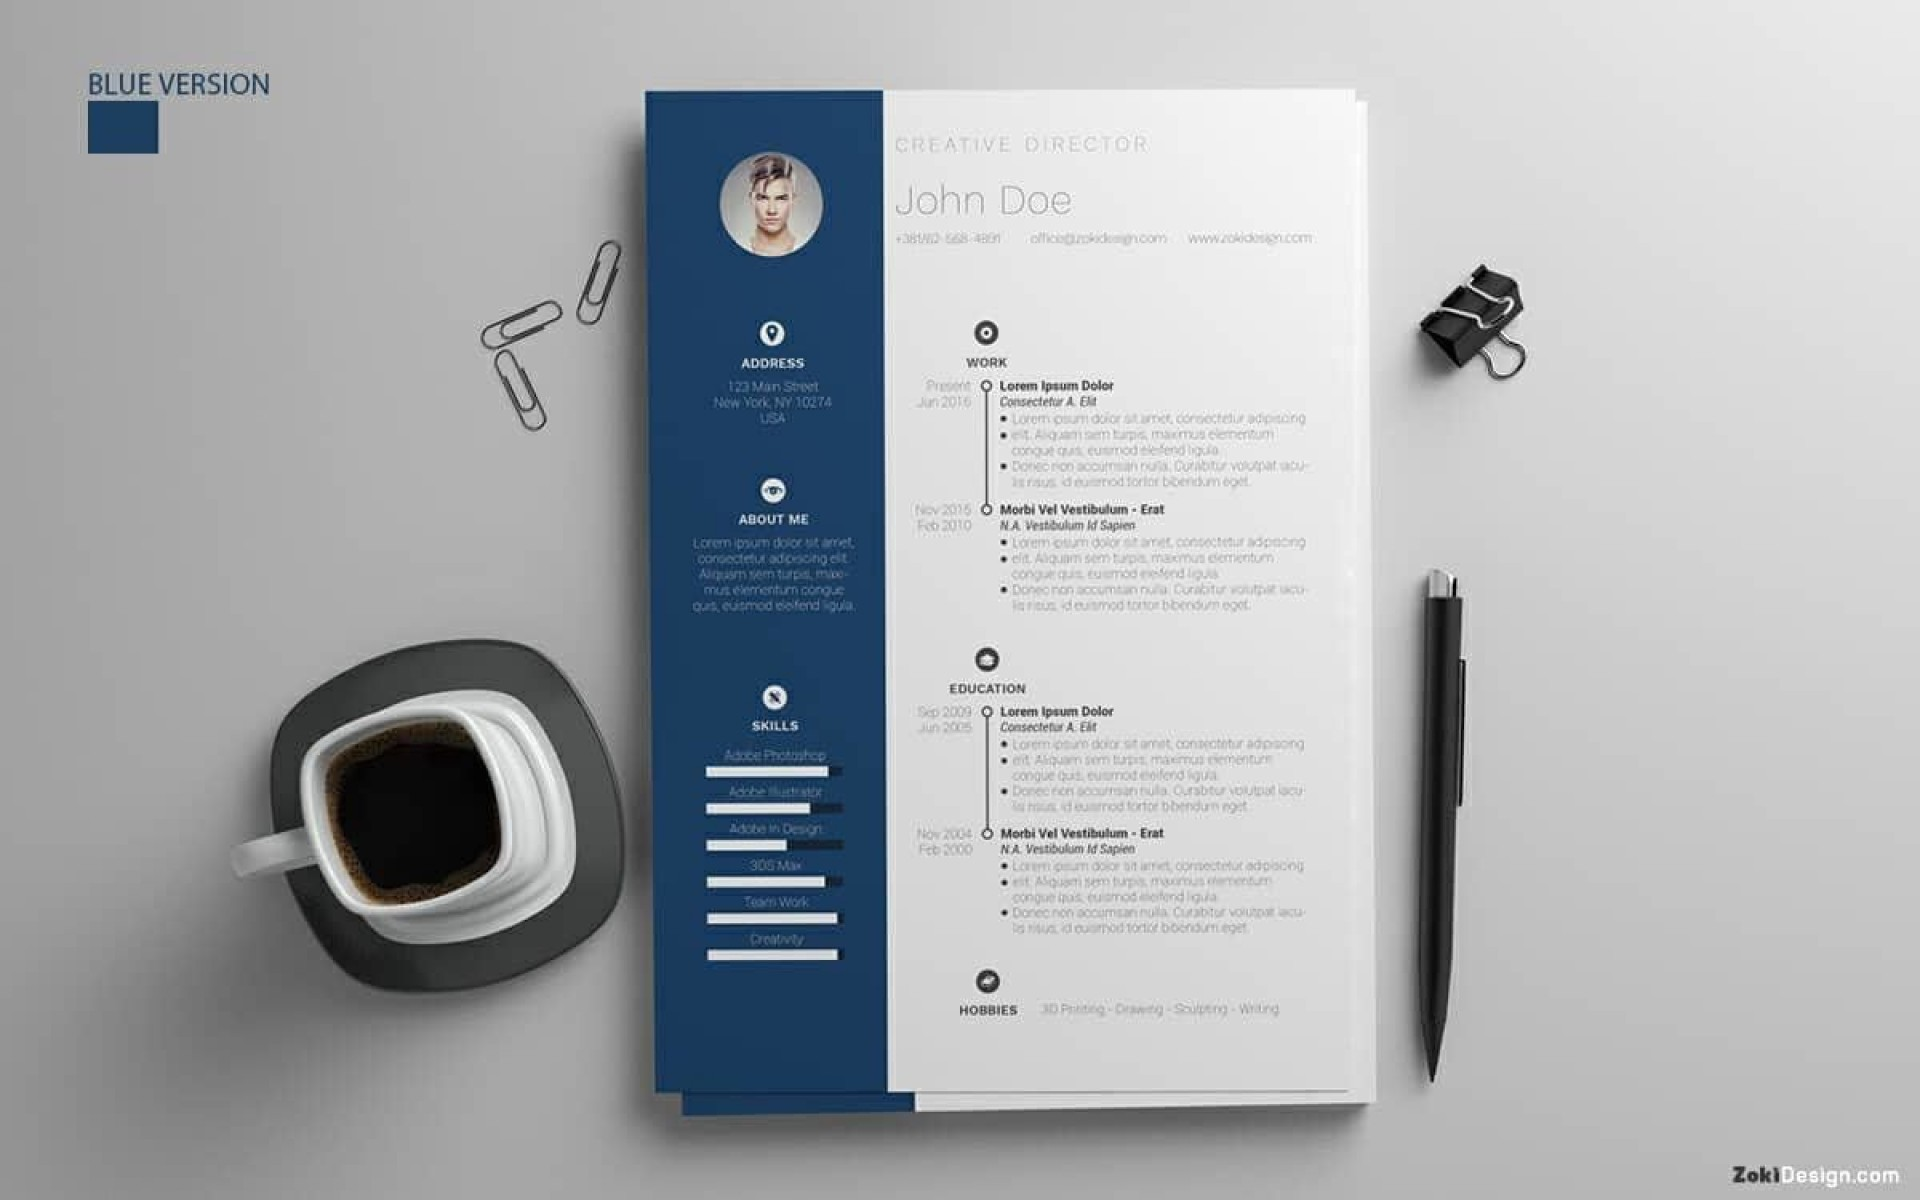 006 Formidable Creative Resume Template Word High Resolution  Professional Free Download Example Editable1920